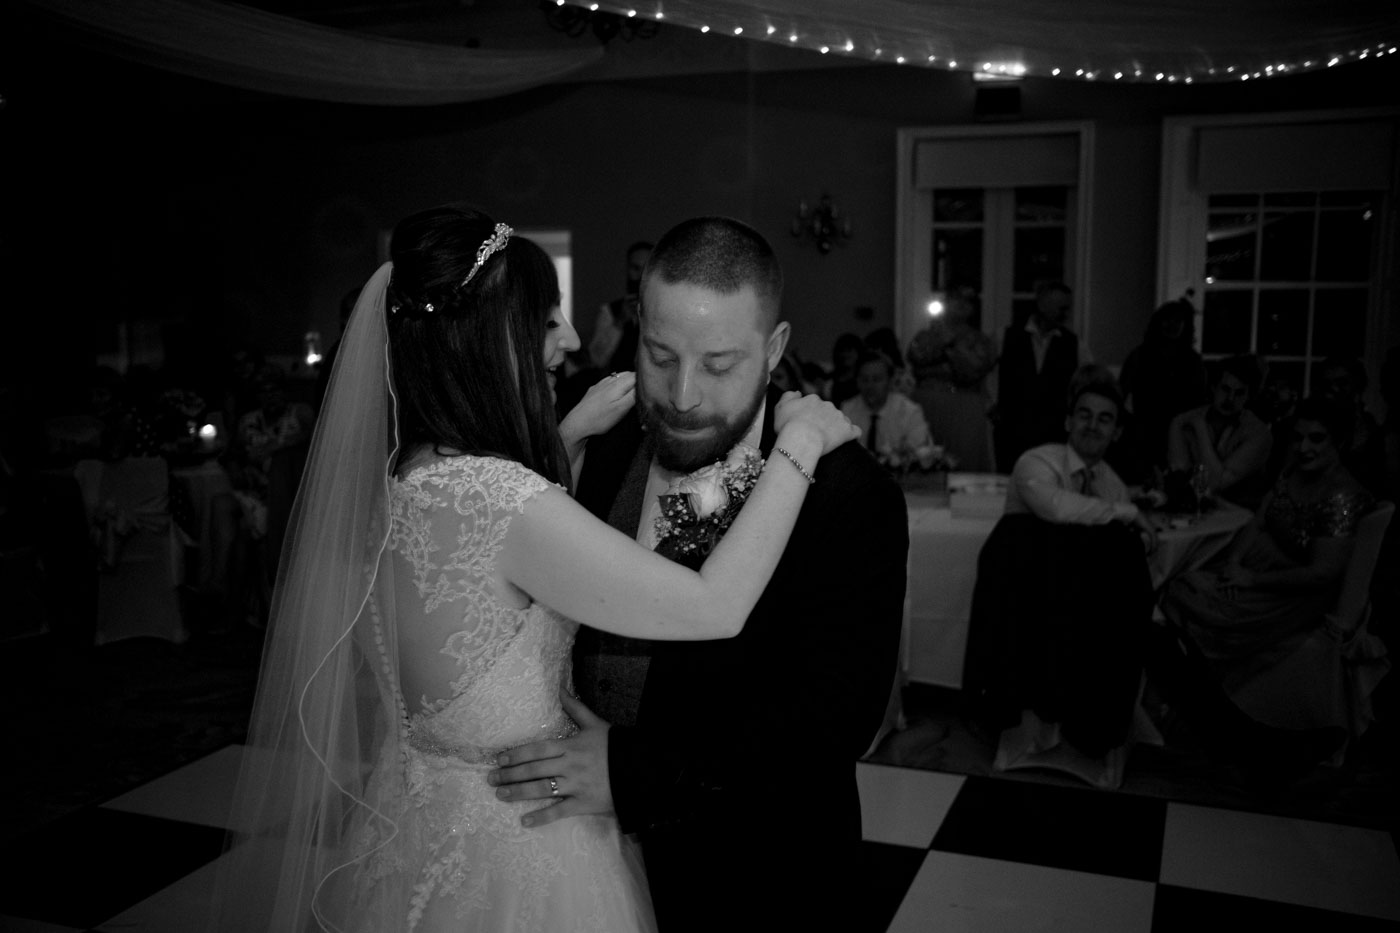 intimate first dance with guests watching in the background